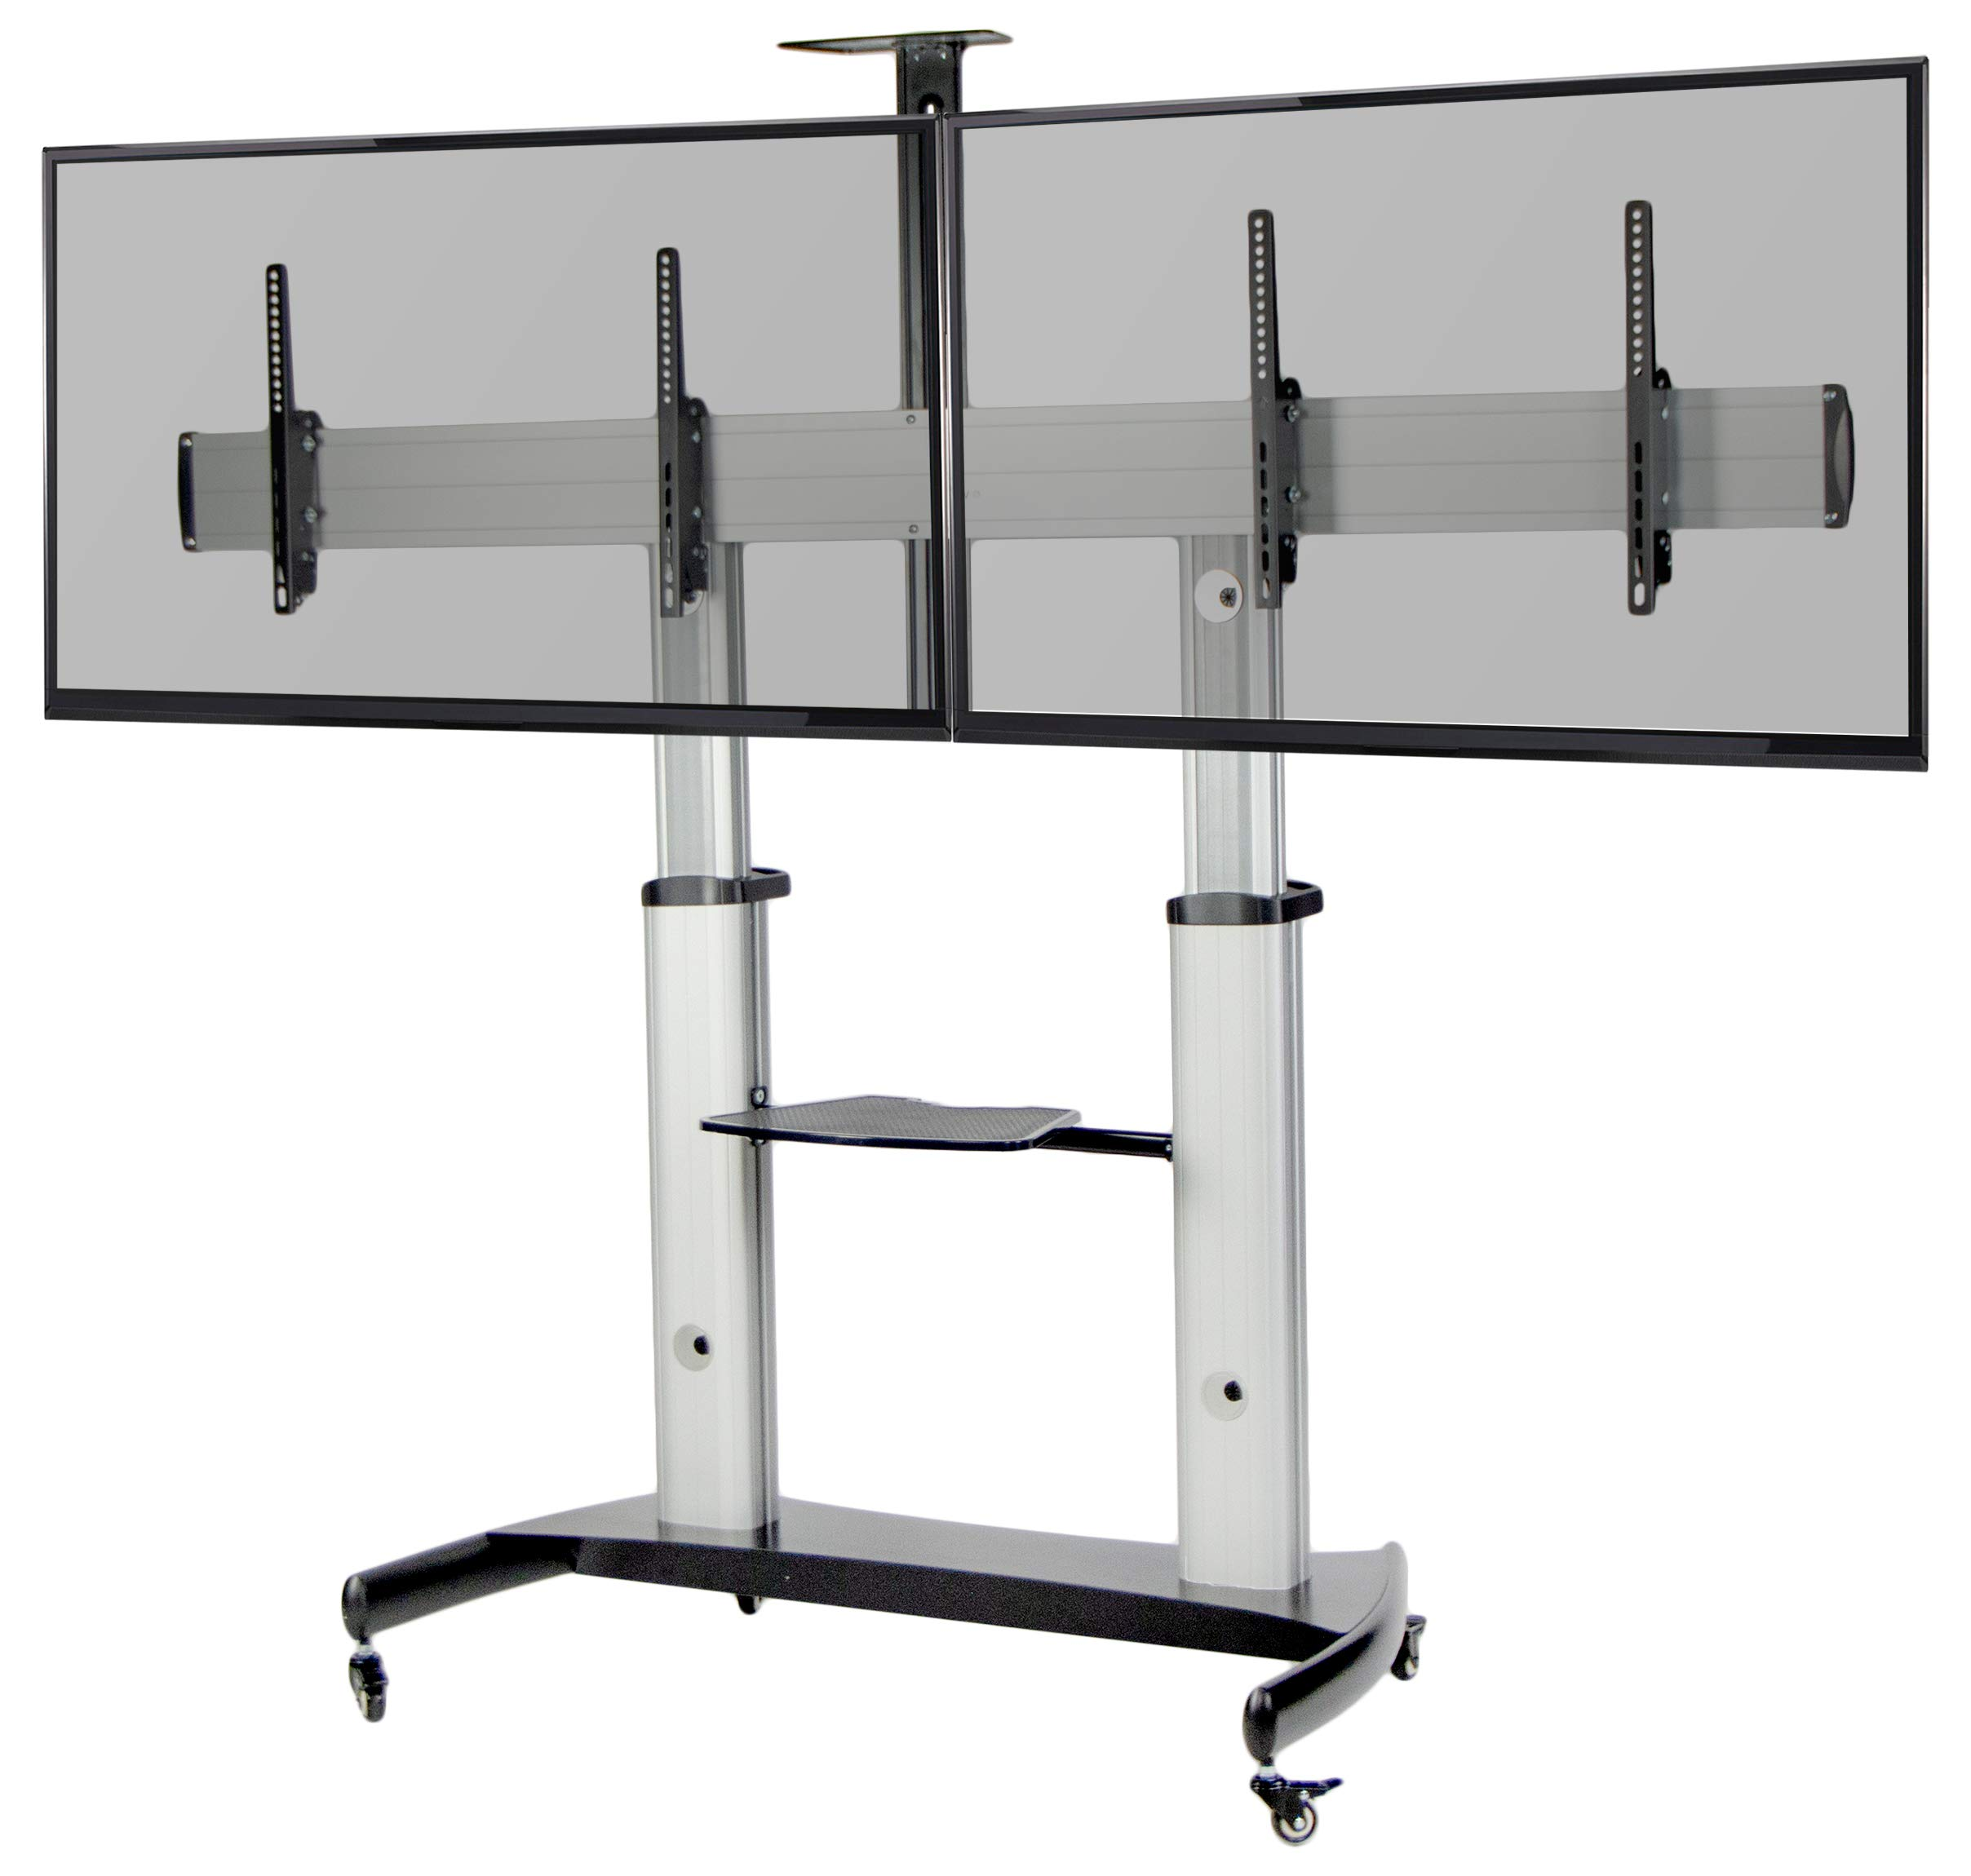 """VIVO Ultra Heavy Duty for Flat Screens up to 60"""" Mobile Rolling TV Stand   Adjustable Dual TV Cart Mount with Wheels (STAND-TV12H)"""